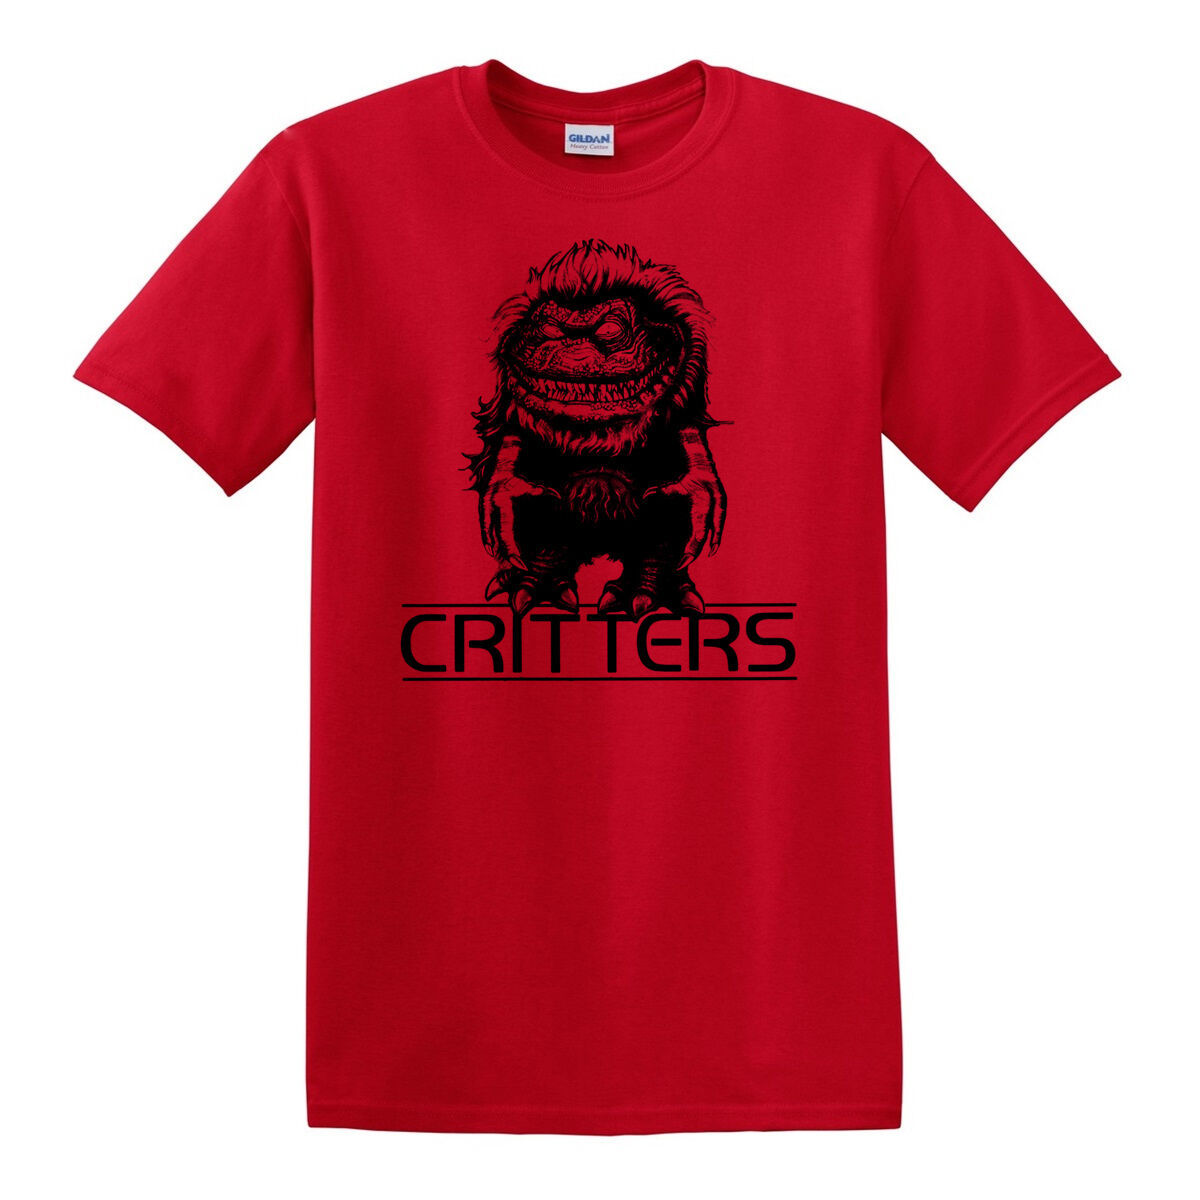 Critters T-shirt Free Shipping retro horror film 80s 100 % cotton graphic tee